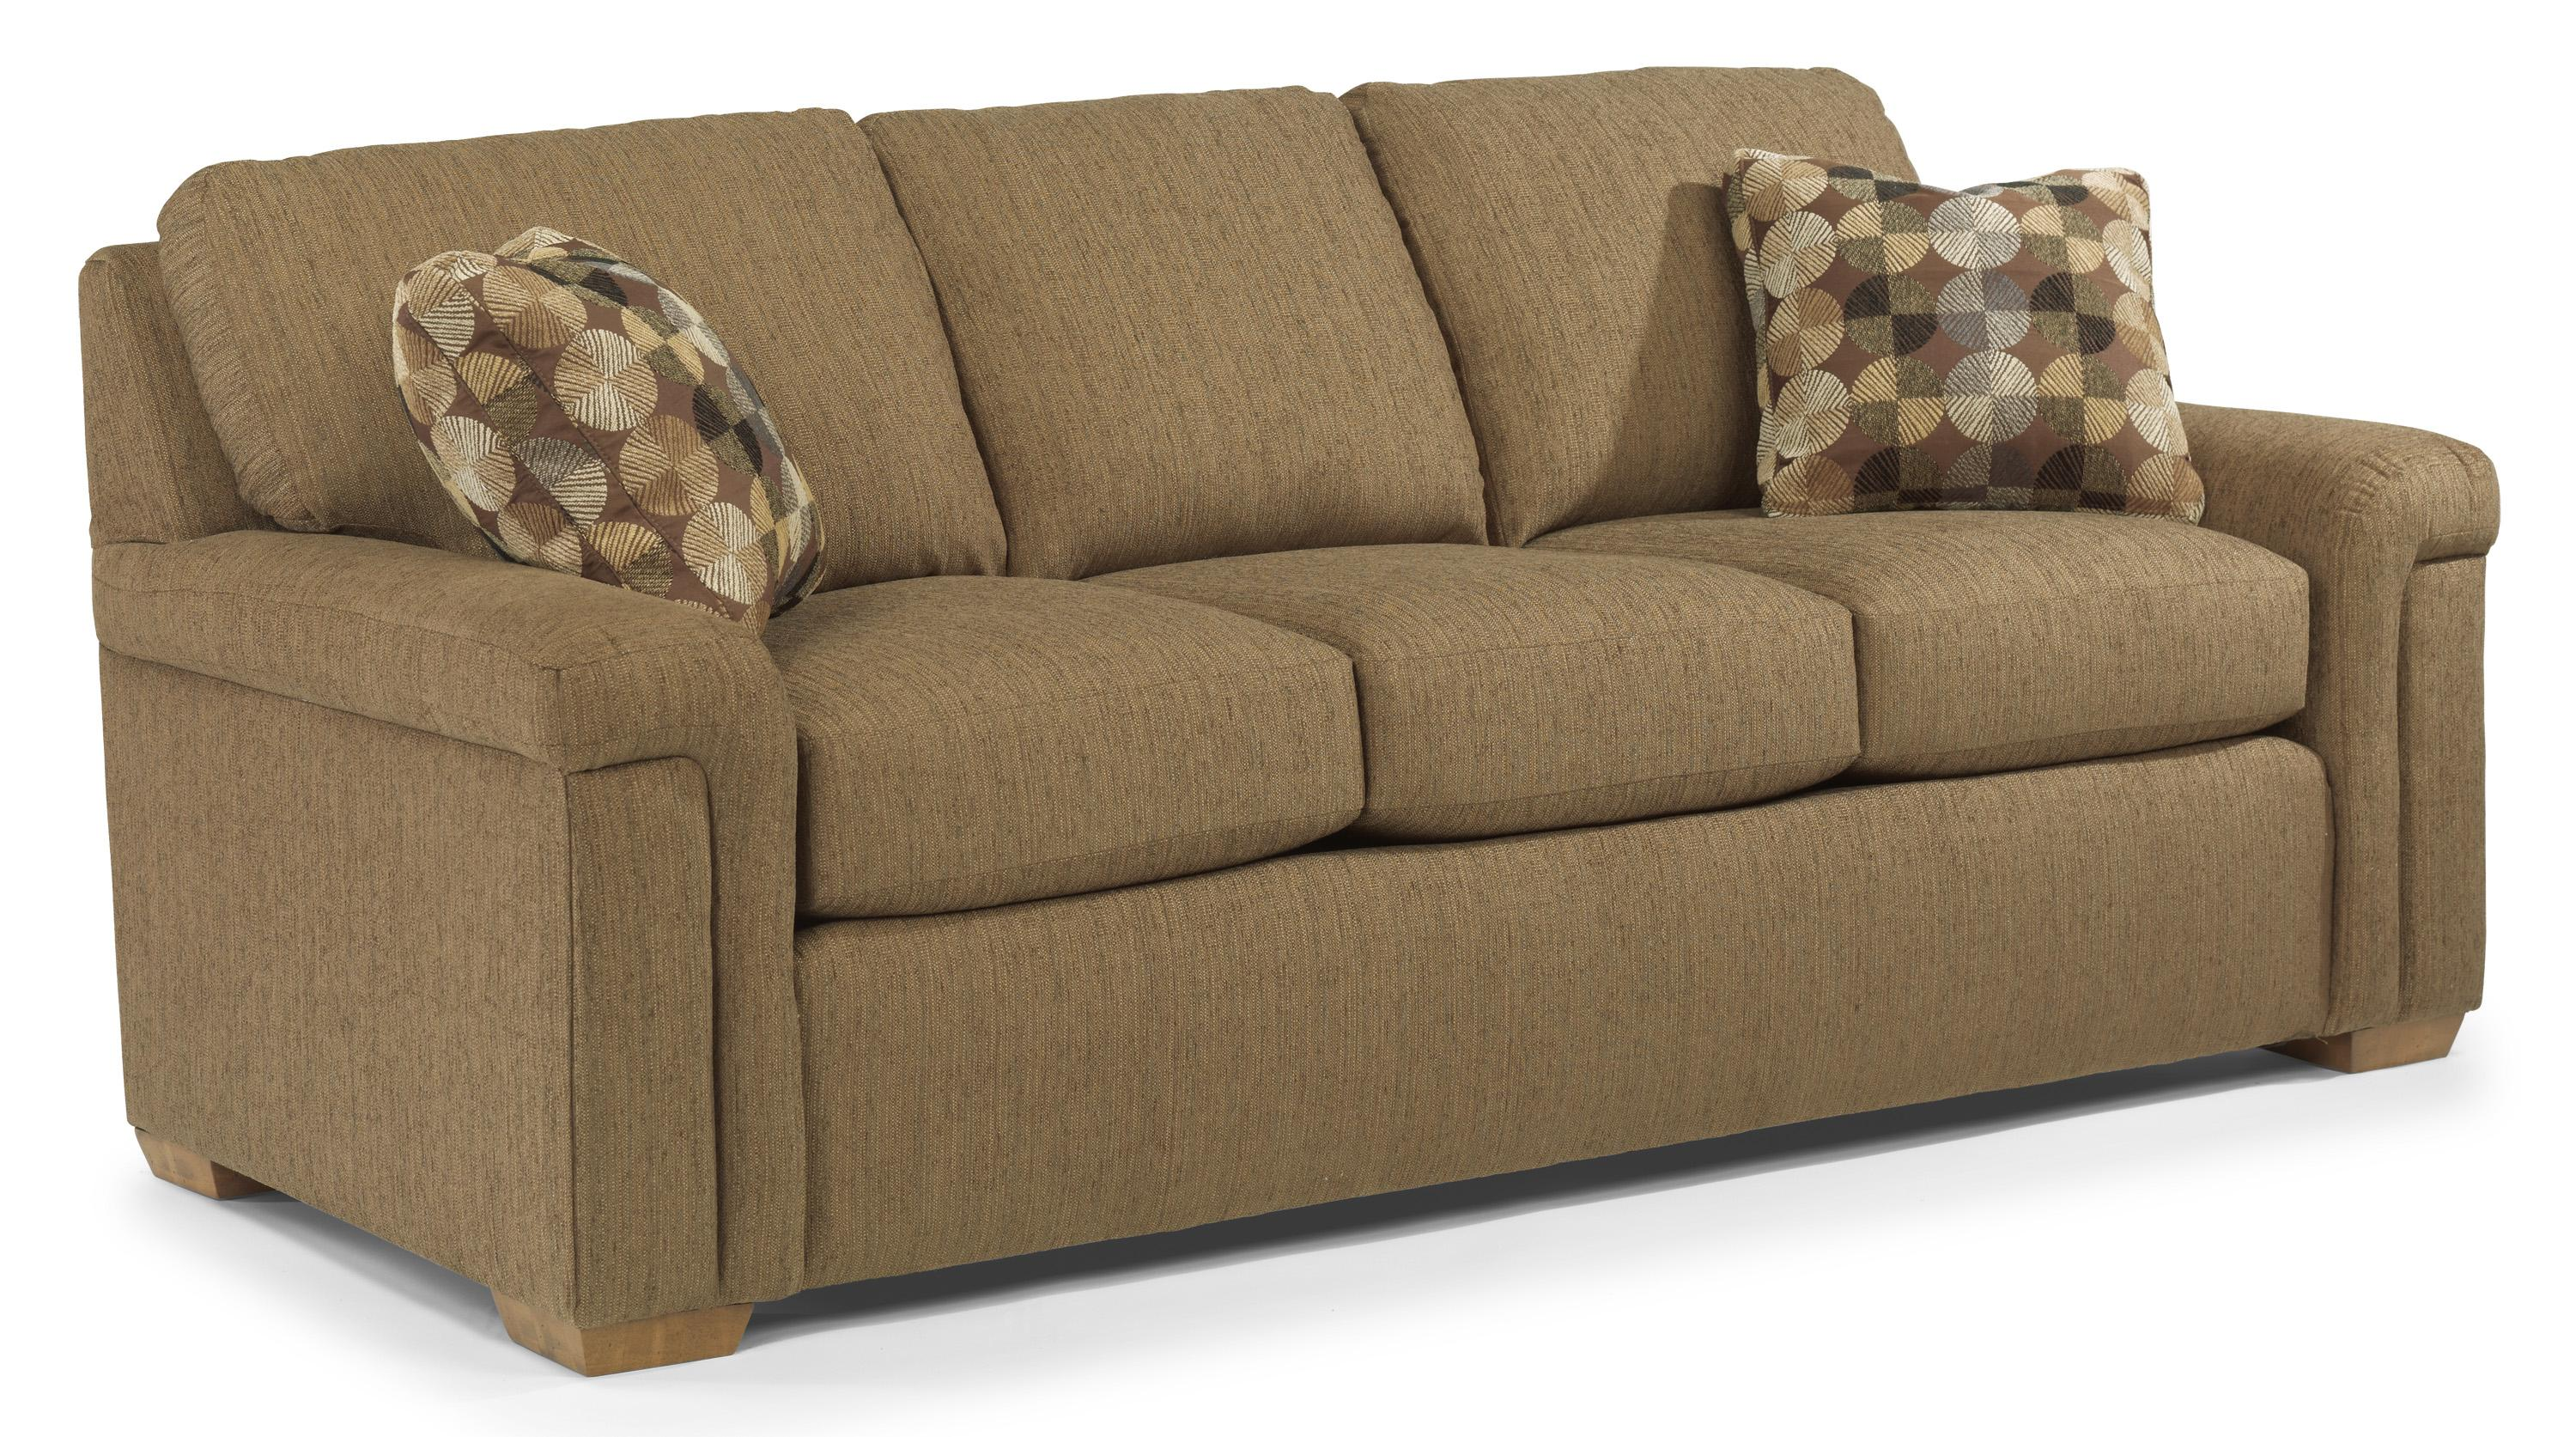 Sofa Express Pineville Nc Flexsteel Blanchard B Value Package B Casual Sofa With Pillow